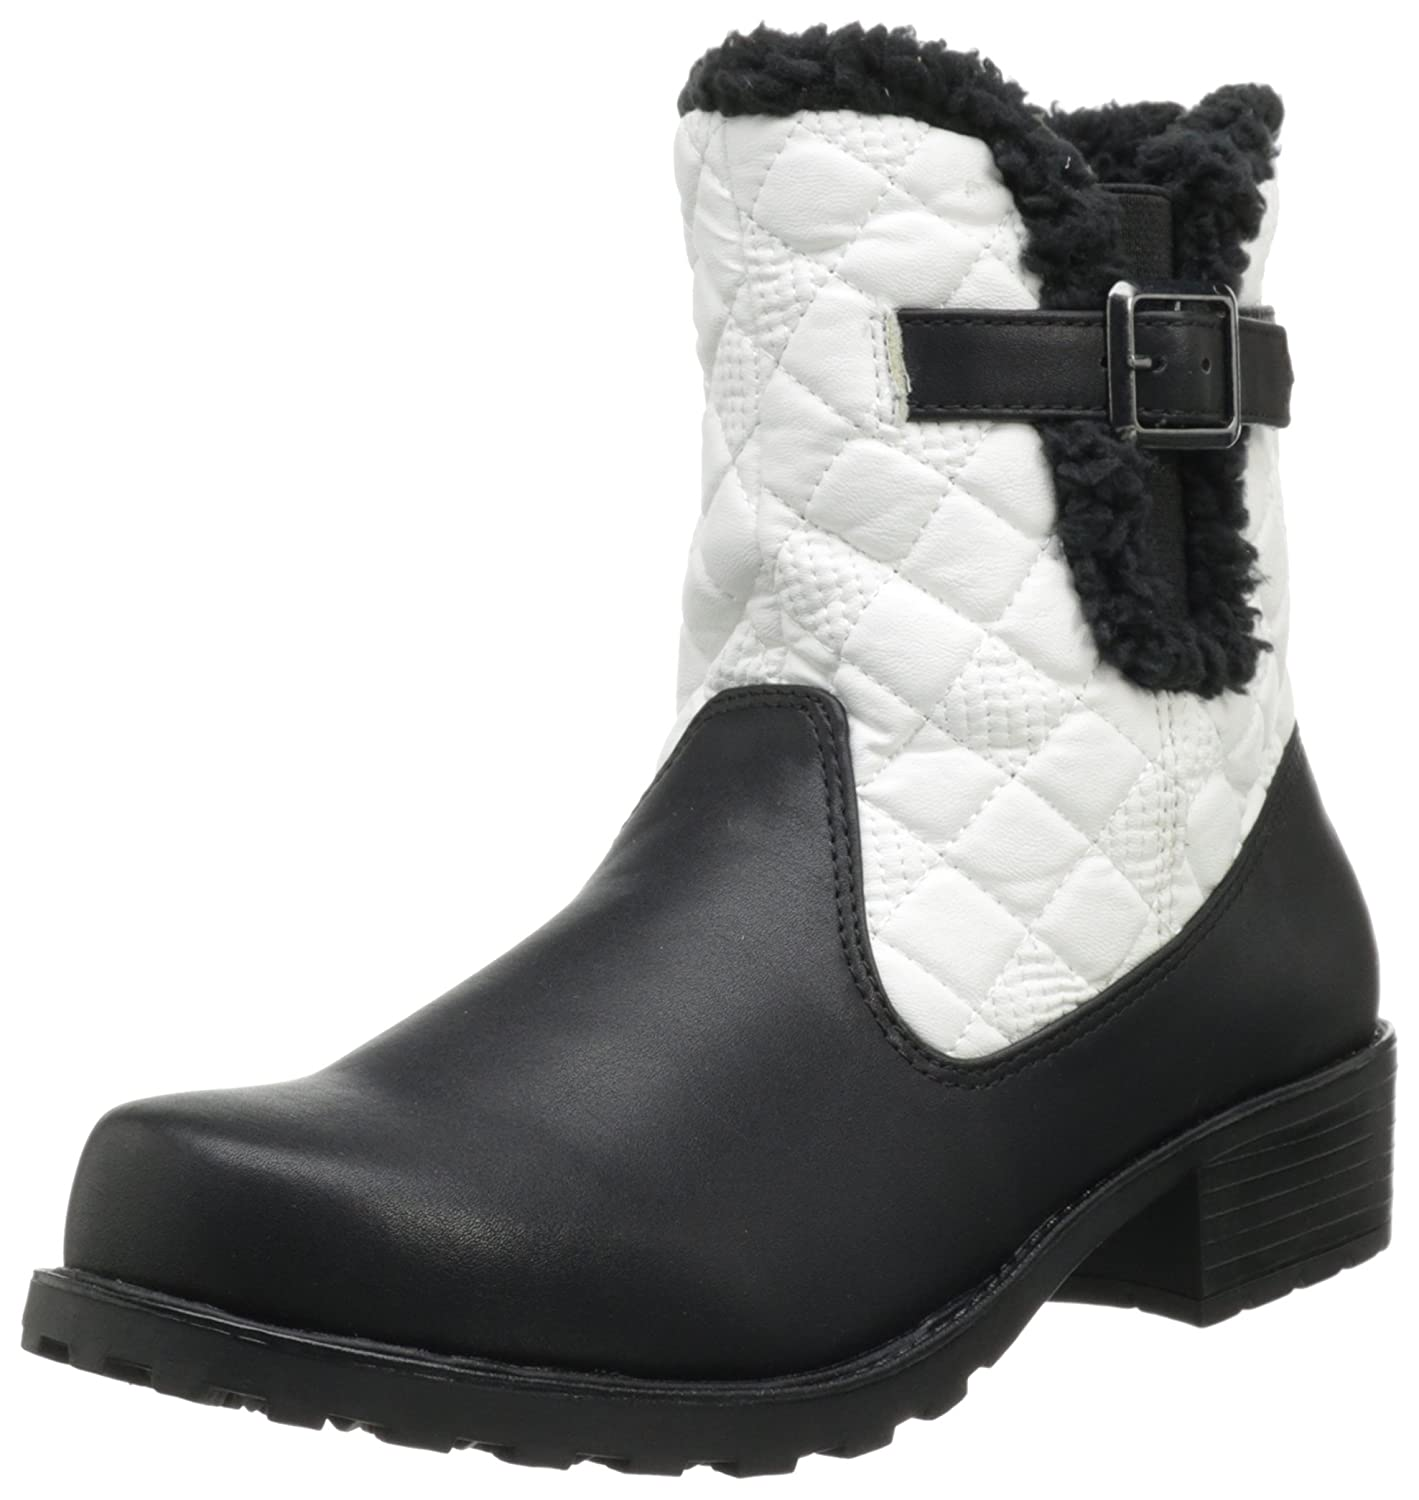 Trotters Women's Blast III Boot B00BI1YPME 7 N US|Black/White